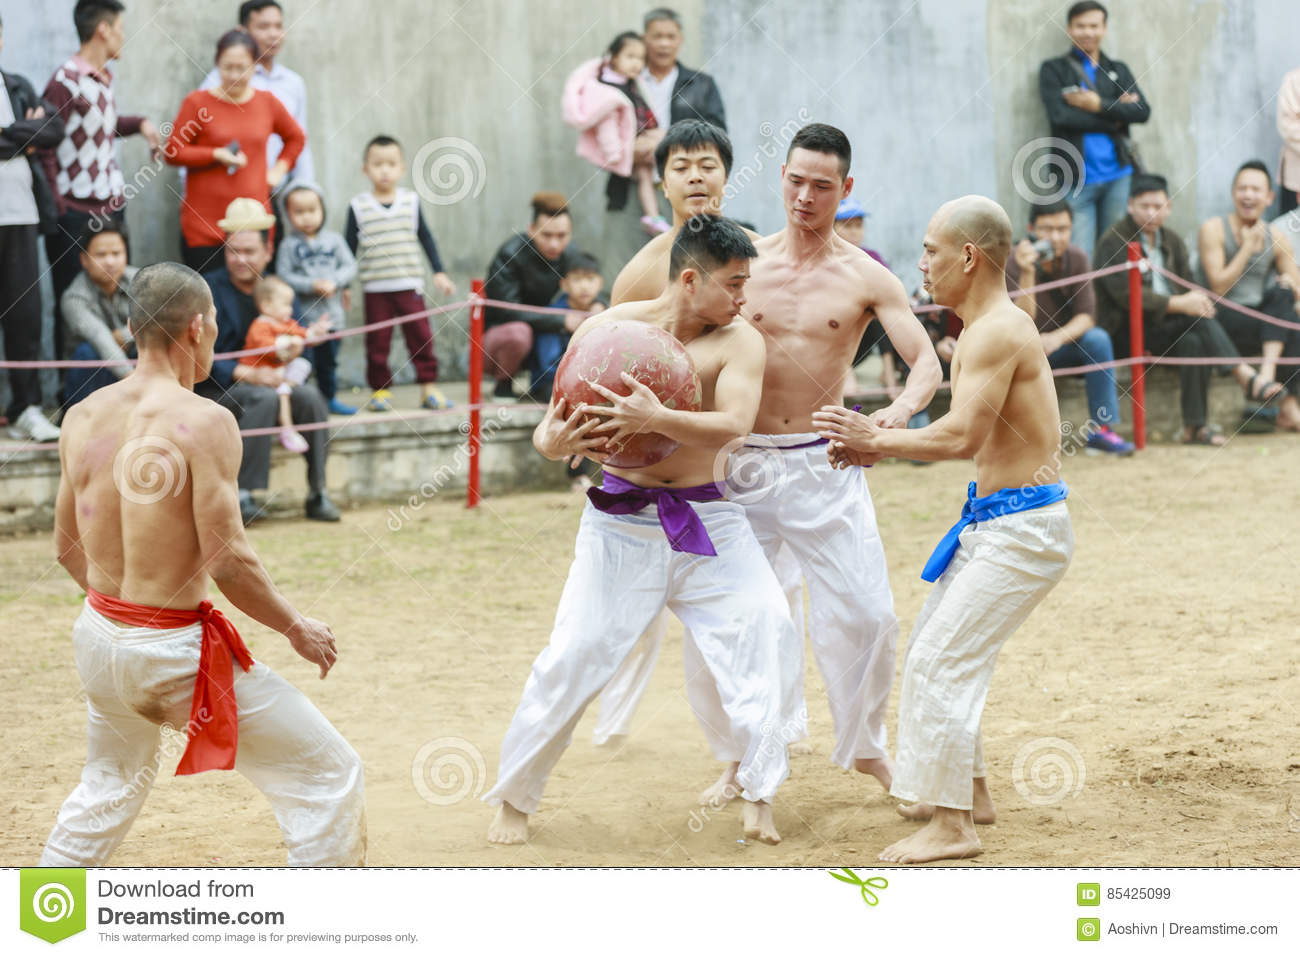 Some young men play with wood ball in festival lunar new year at Hanoi, Vietnam on January 27, 2016